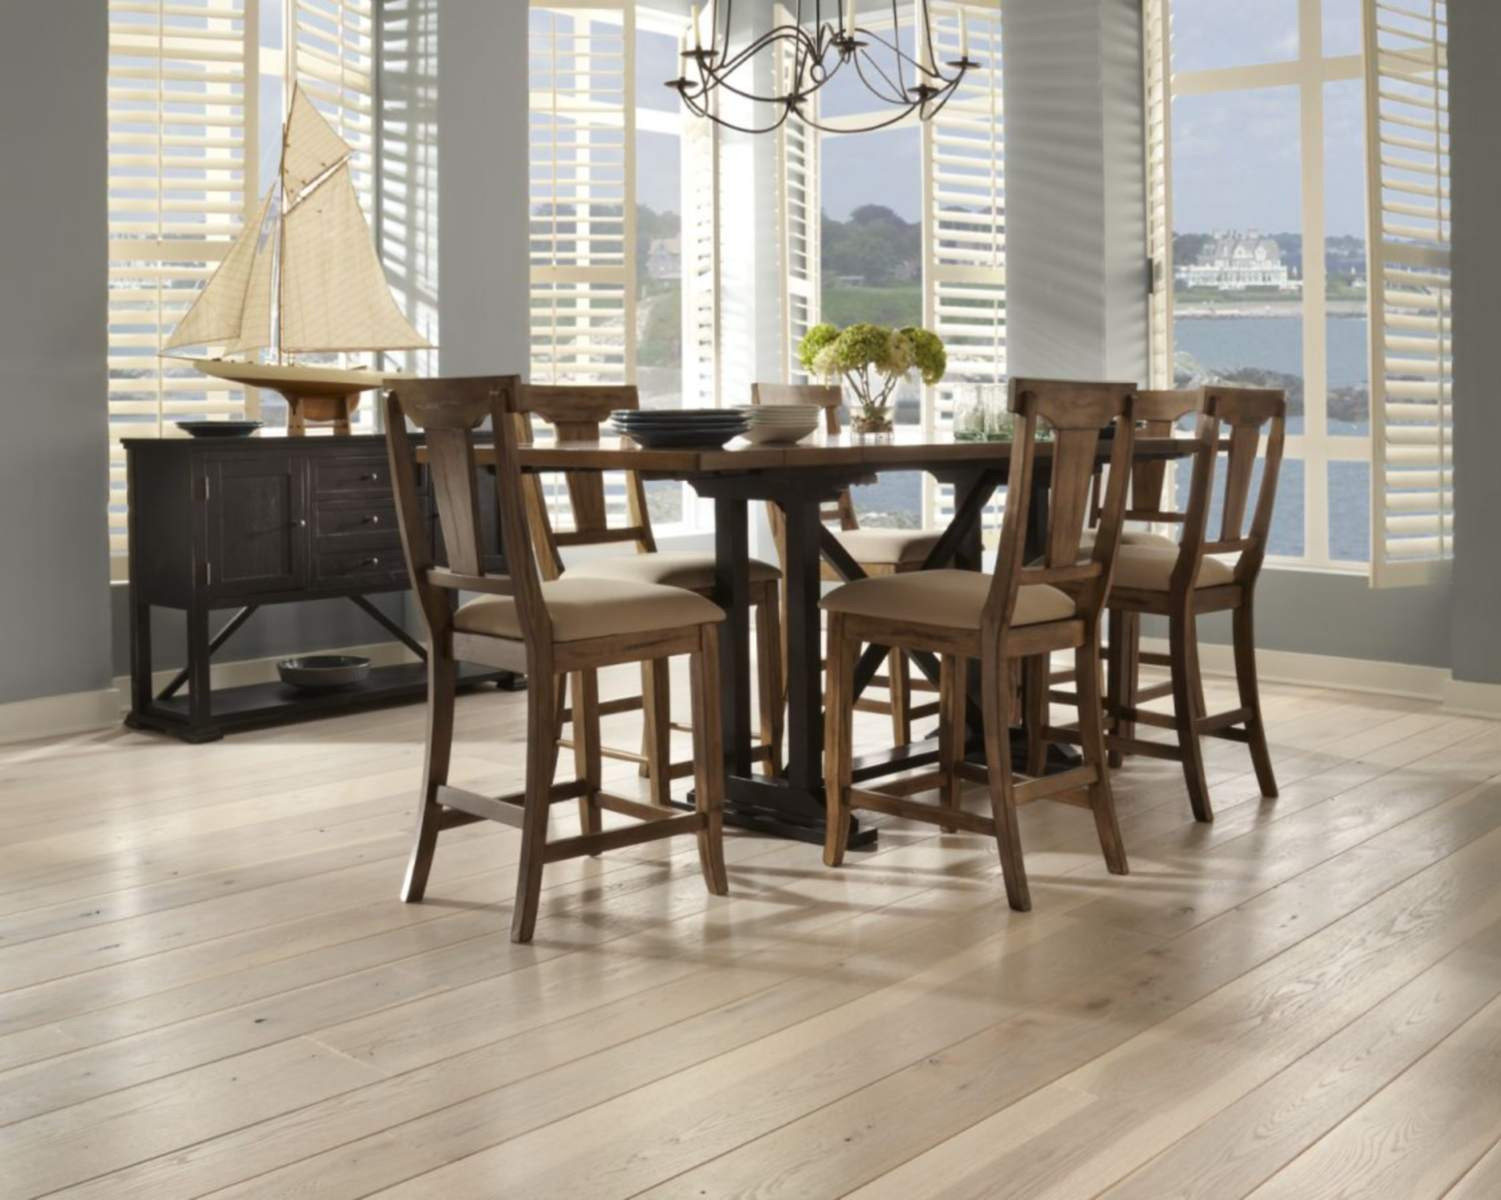 hardwood flooring depot ltd of top 5 brands for solid hardwood flooring inside a dining room with carlisle hickorys wide plank flooring